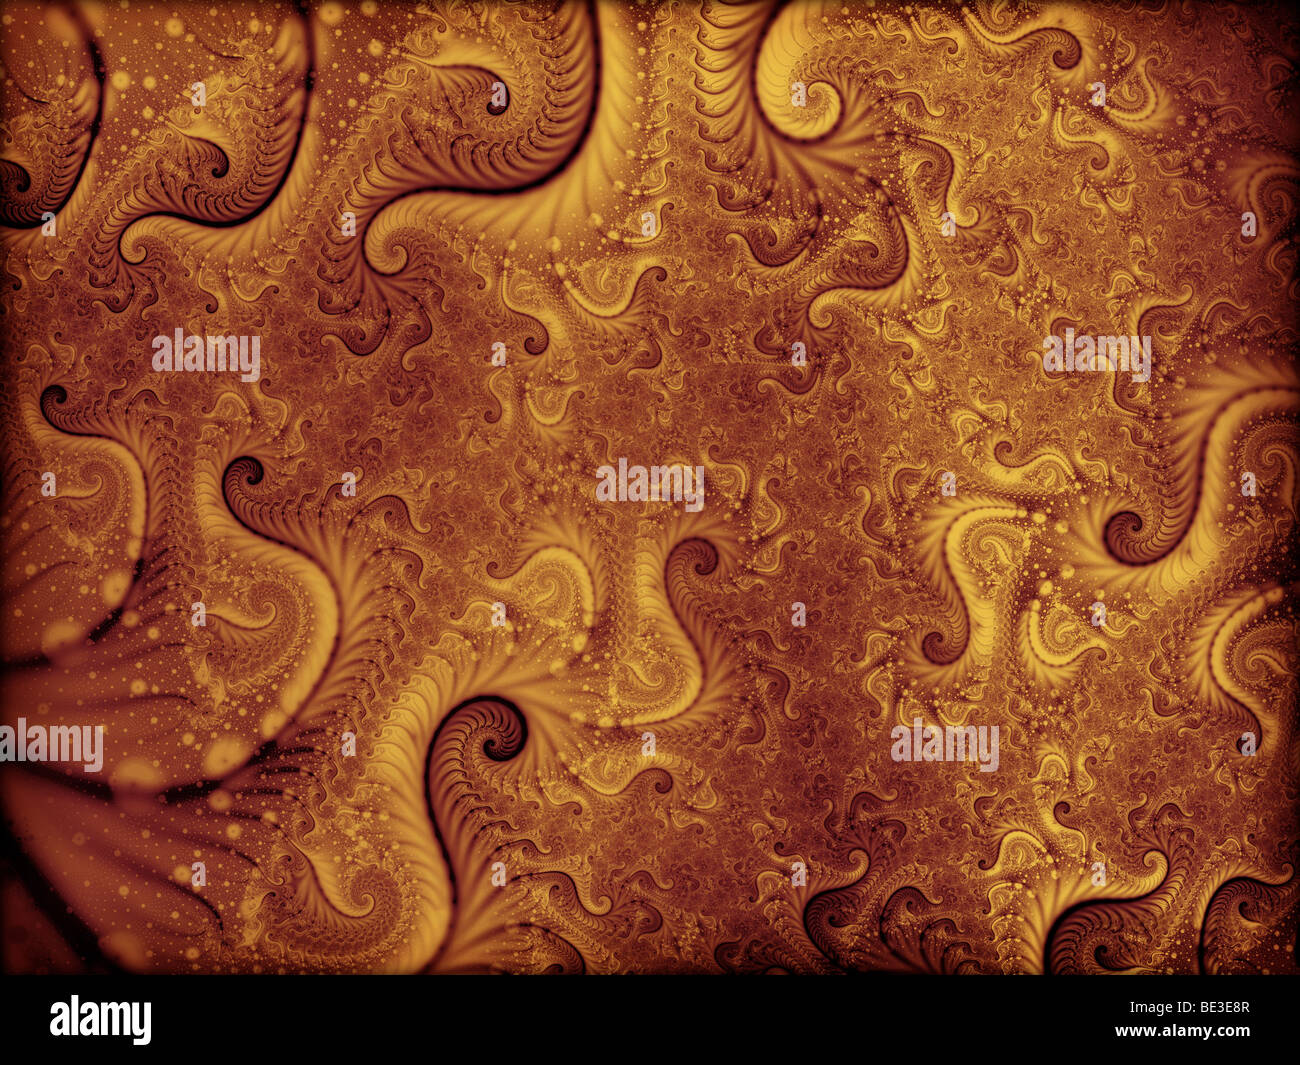 Abstract illustration - Stock Image